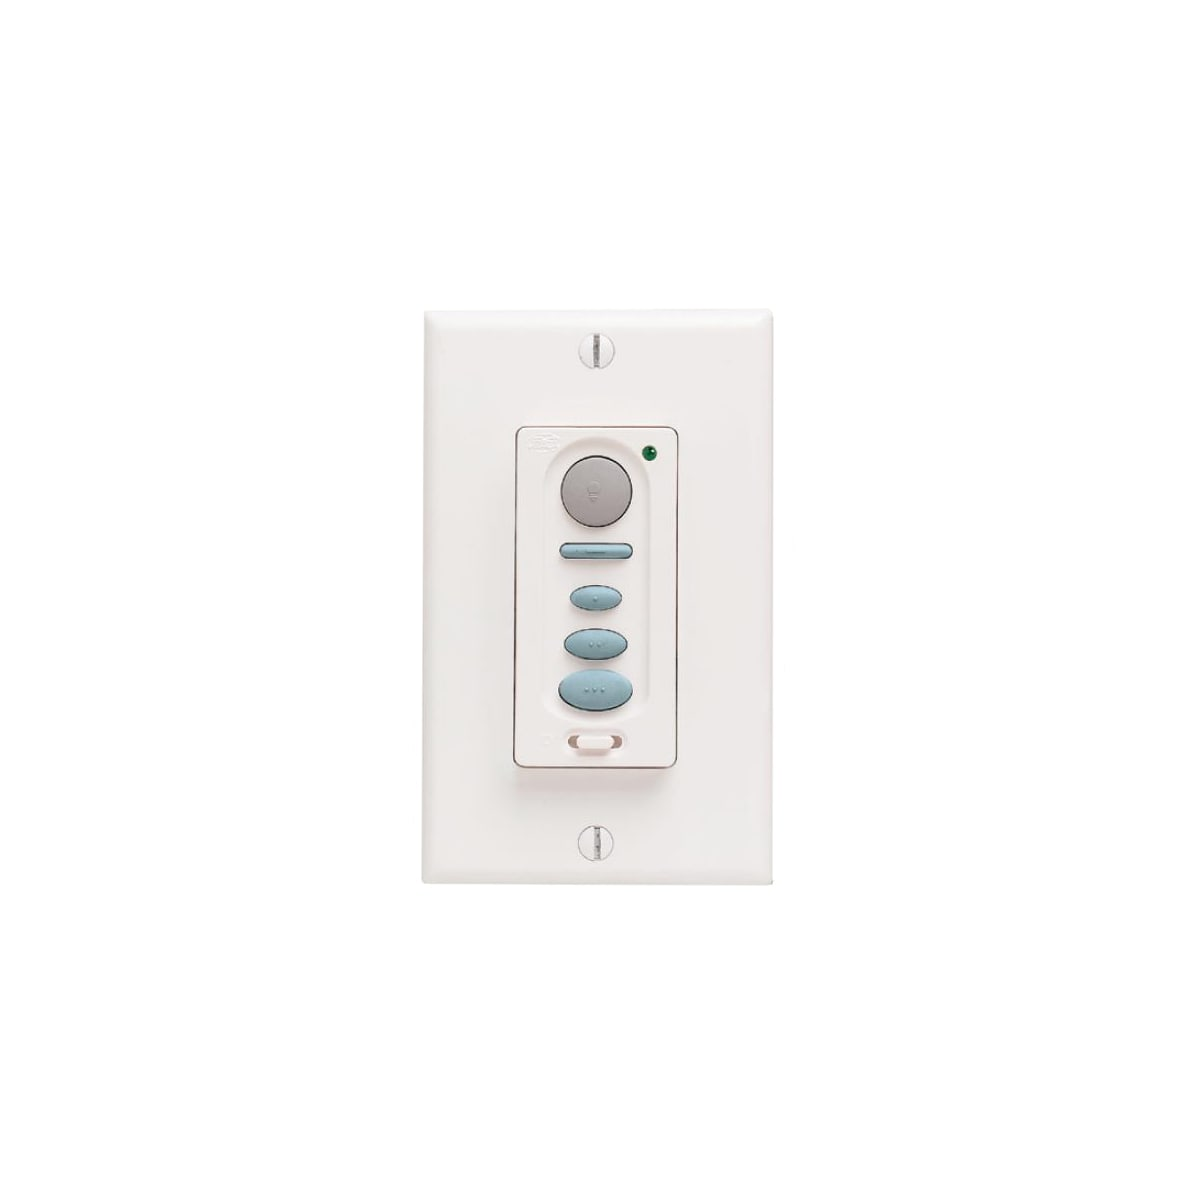 Hunter 27186 White Universal Wall Remote Control for Fan and Lights -  LightingShowplace.com